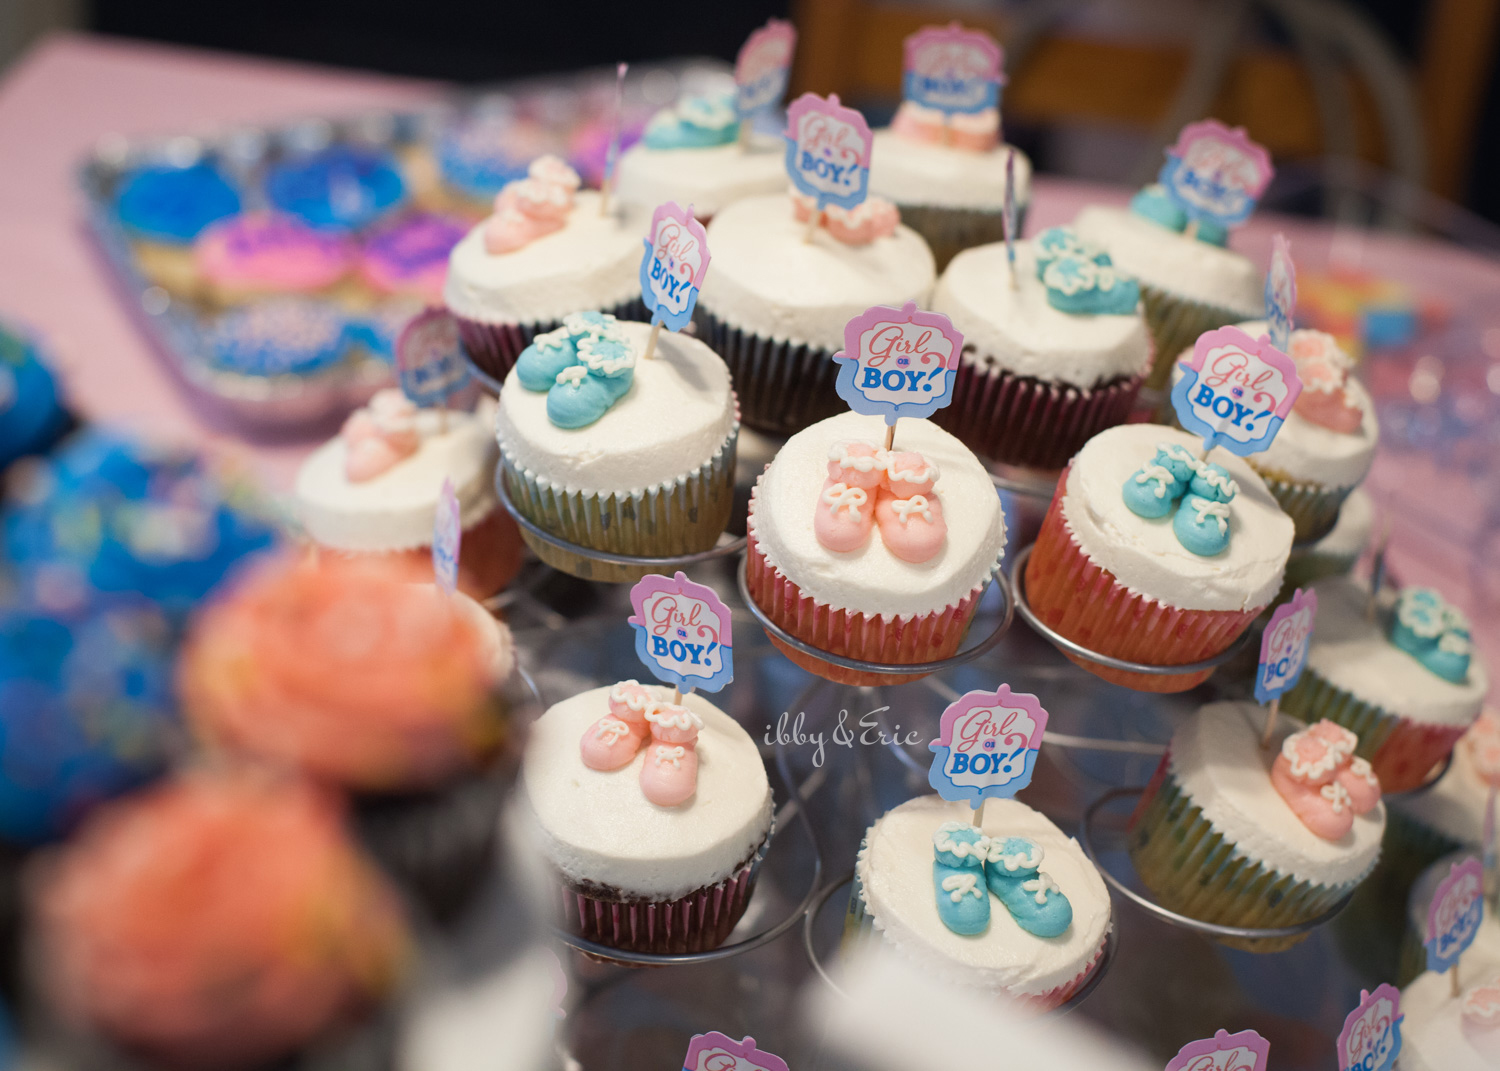 Cupcake display with pink and blue baby shoe decorations.